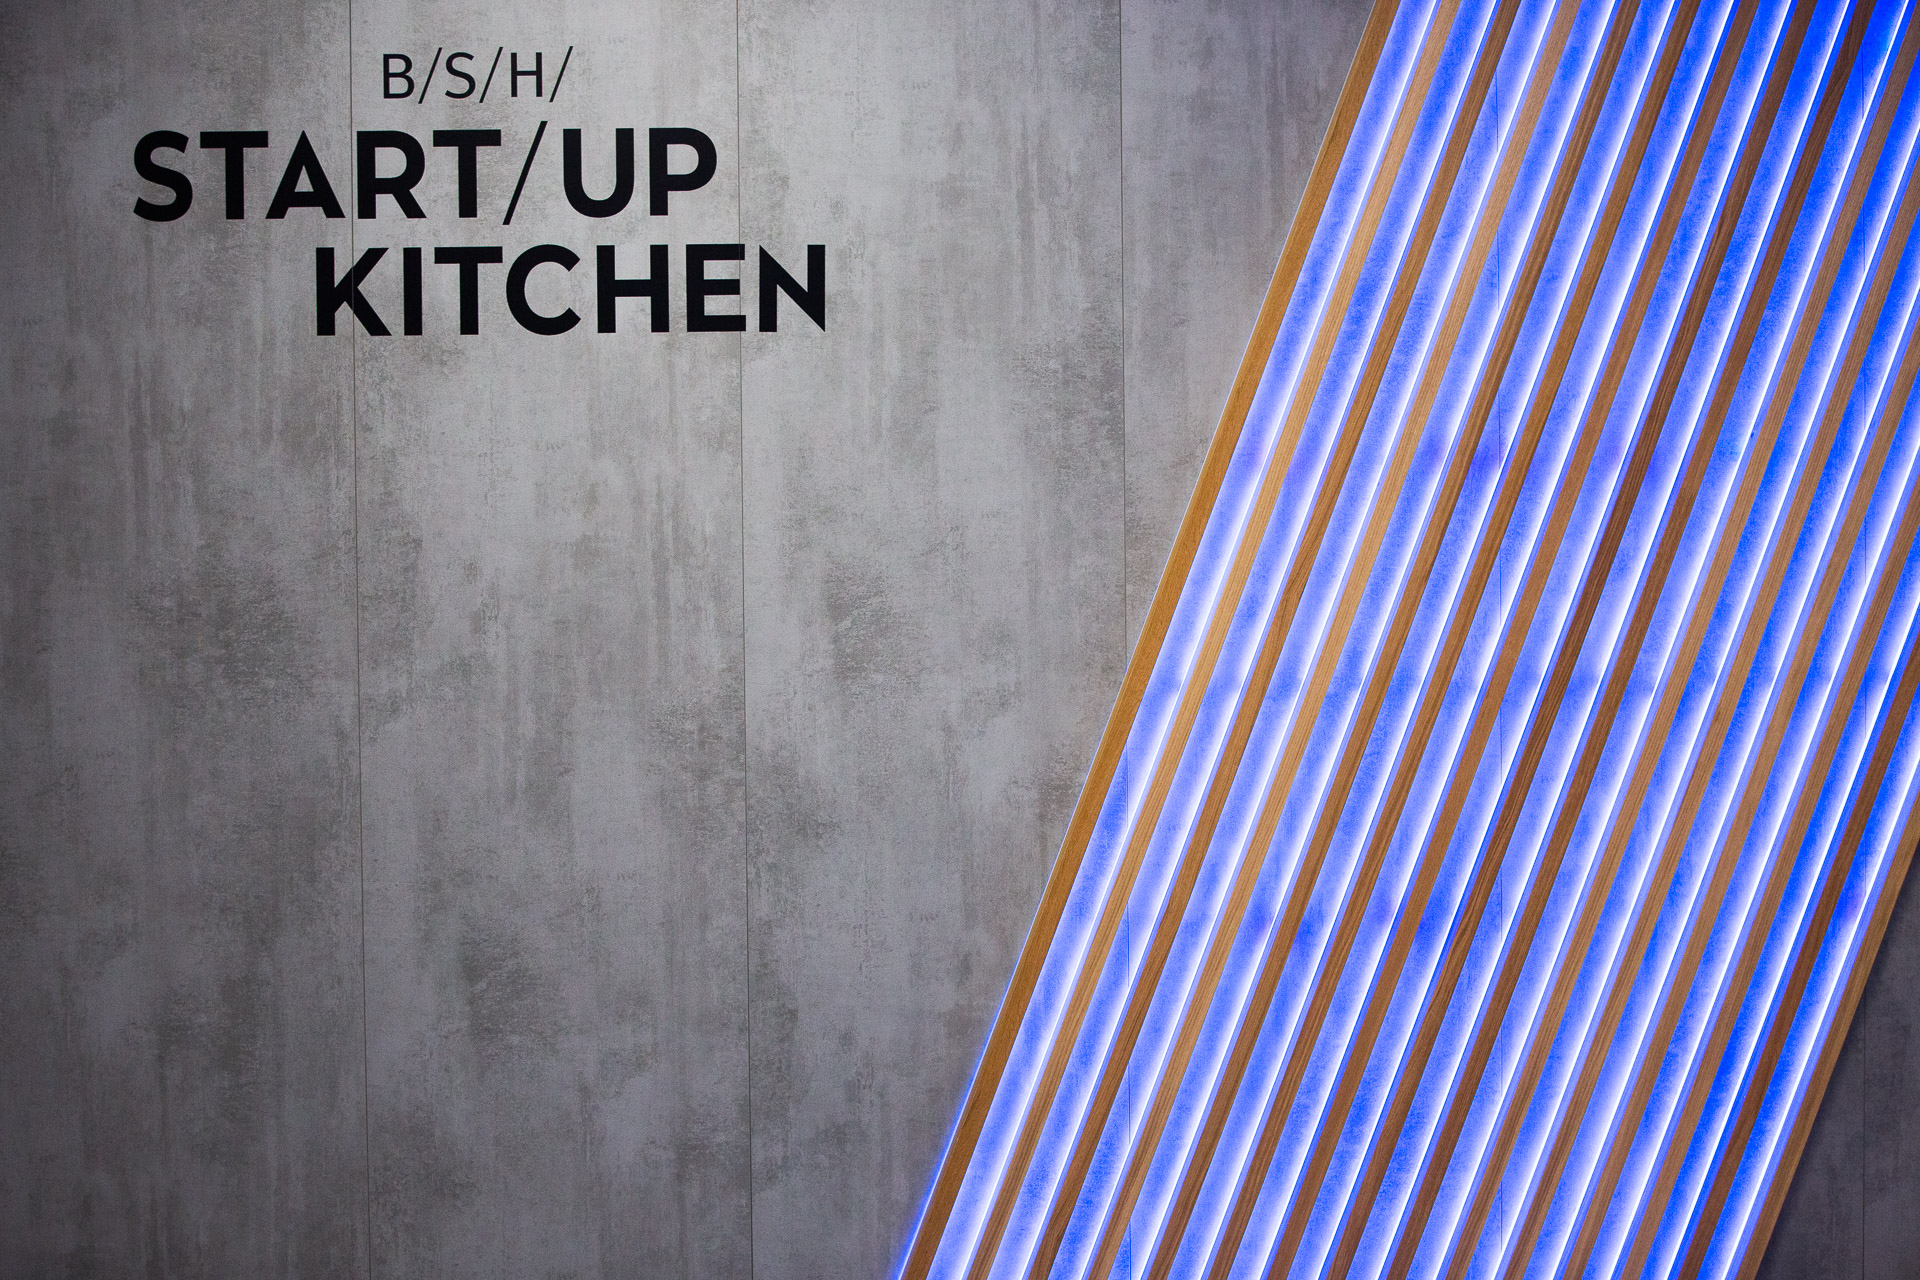 BSH Startup Kitchen Wall Frontview